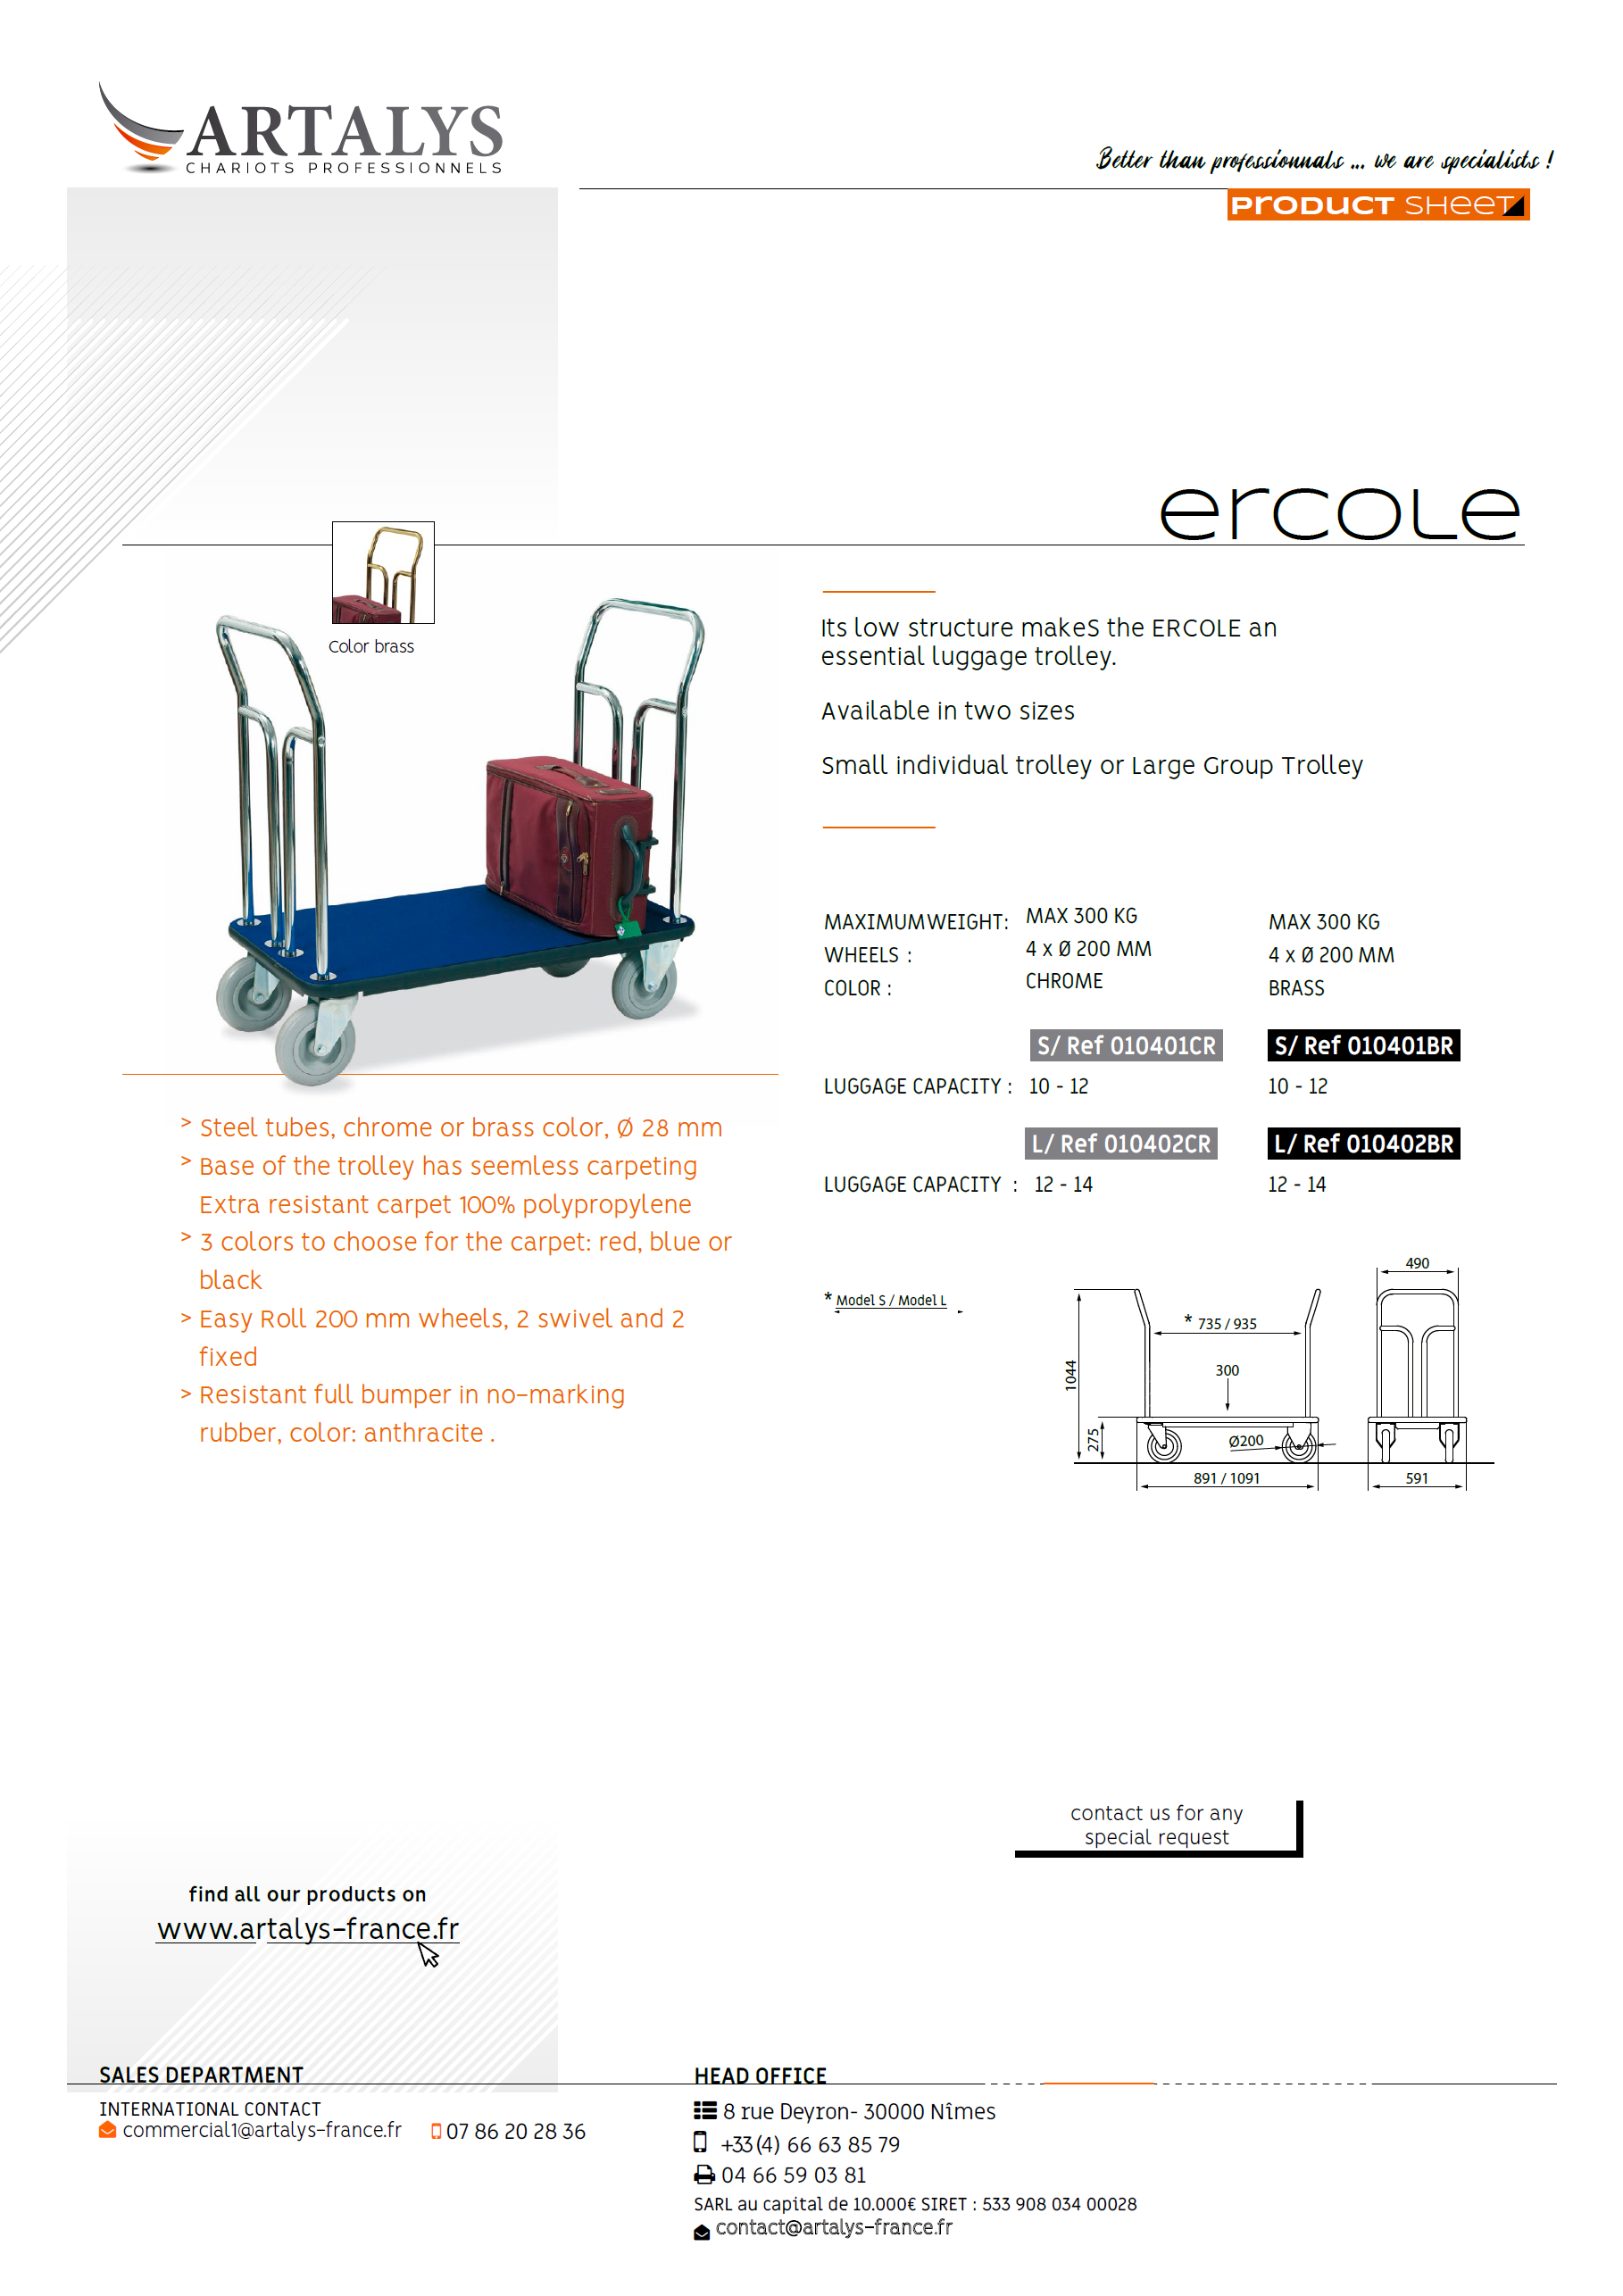 Product sheet of the ercole luggage trolley